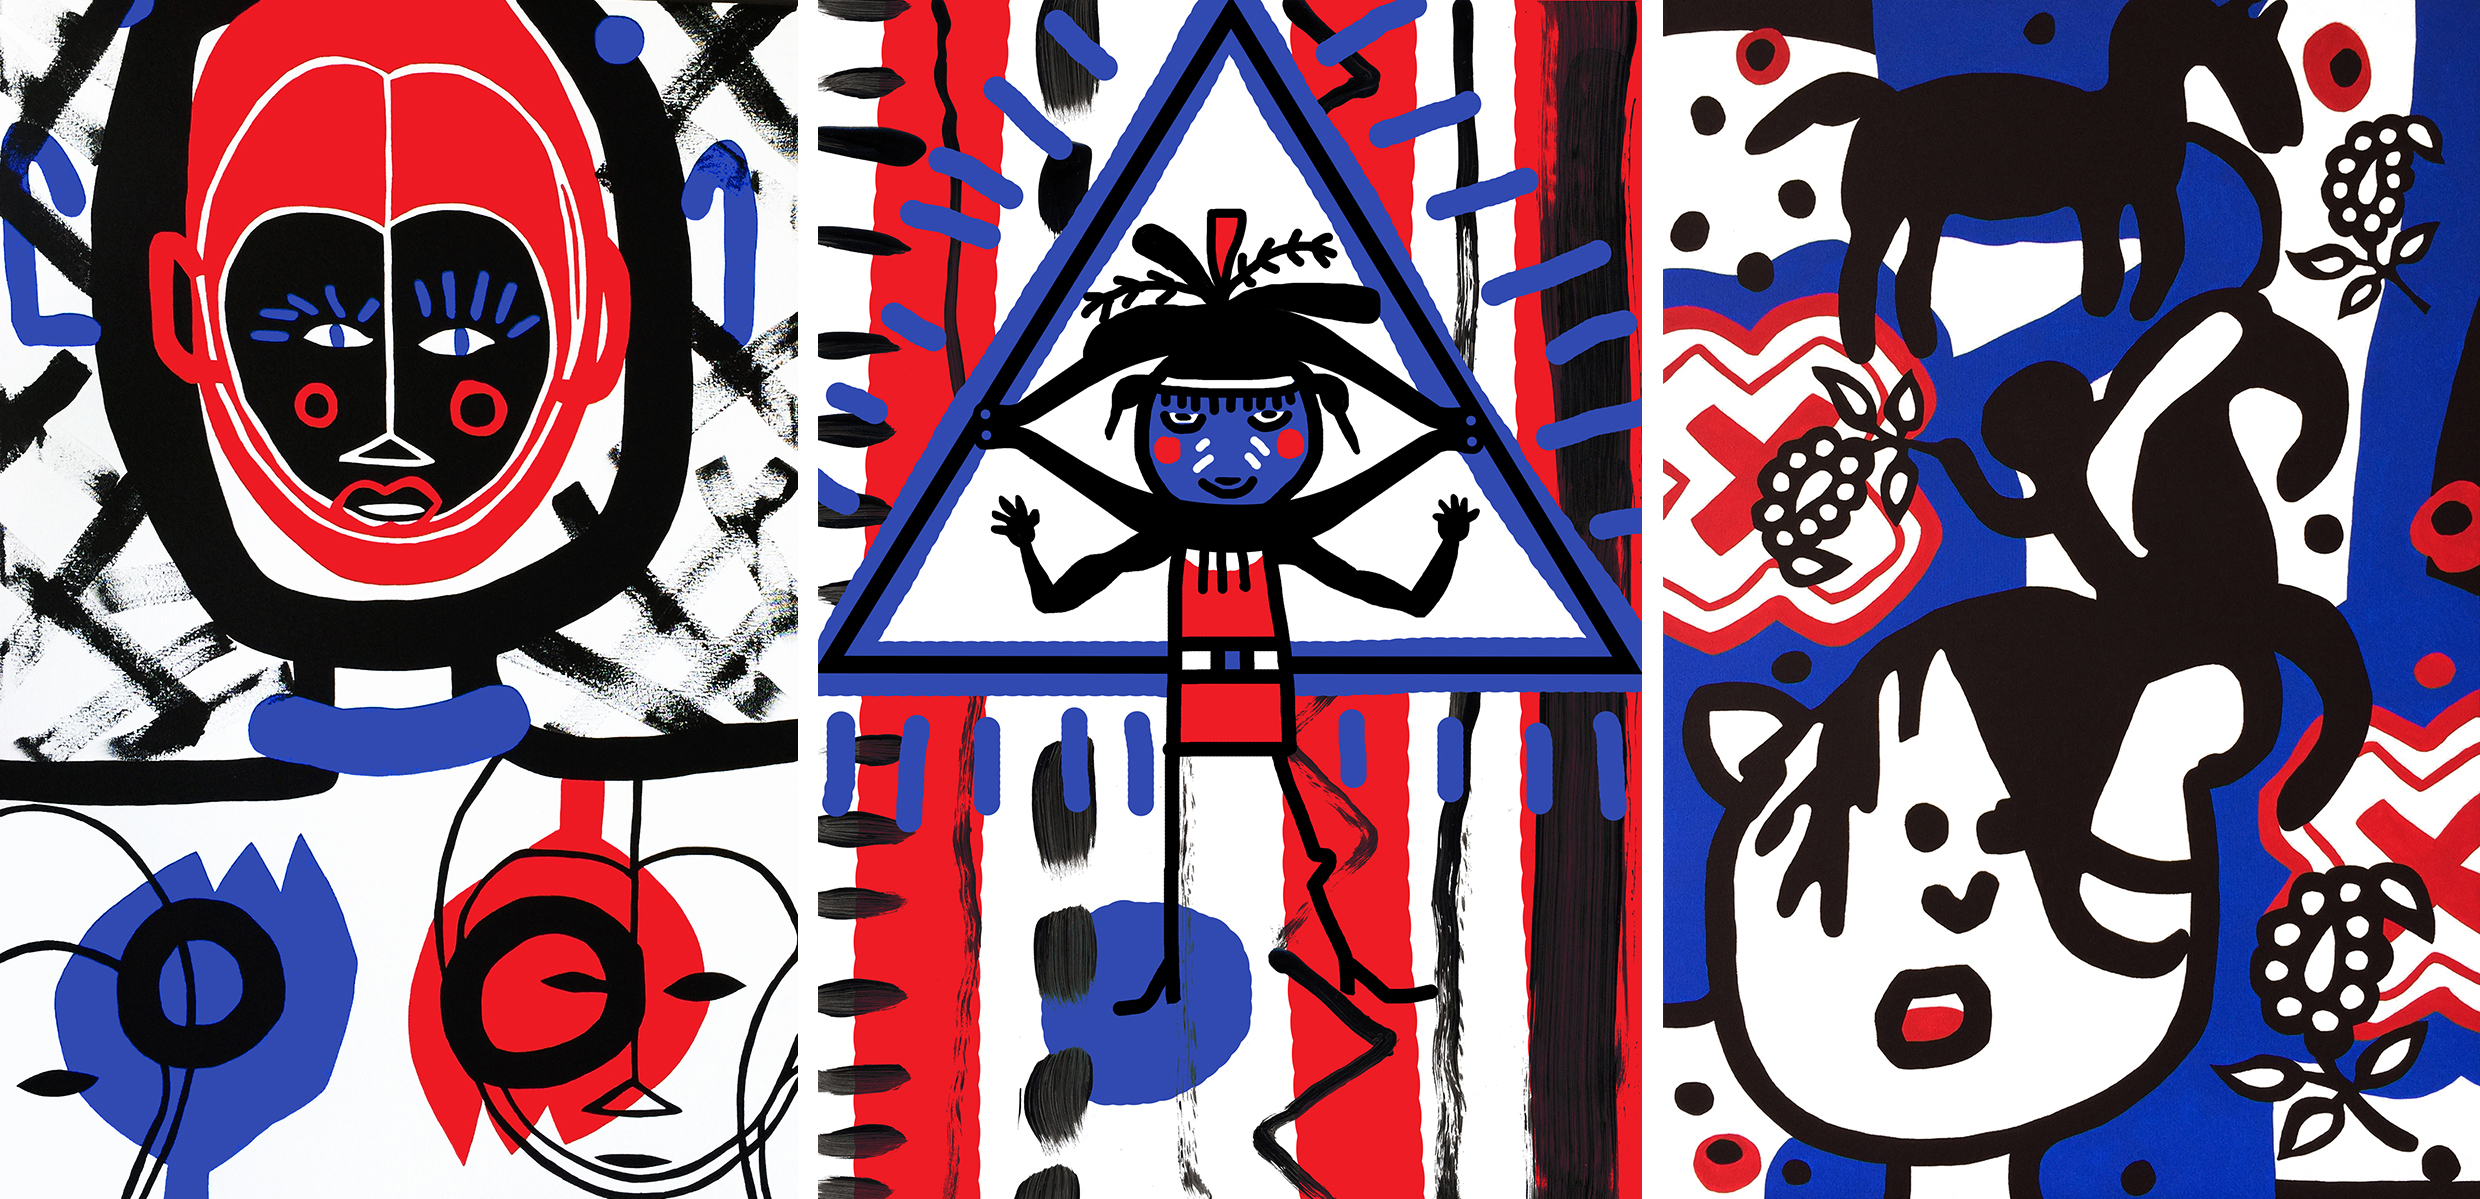 """Acrylic on stretched canvas                  Acrylic on stretched canvas                       Acrylic on stretched canvas    AFRICAN MASK, 24"""" x 36"""",                    NATIVE AMERICAN AND GOD, 24"""" x 36"""",            HORSE INDIA, 24"""" x 36"""""""